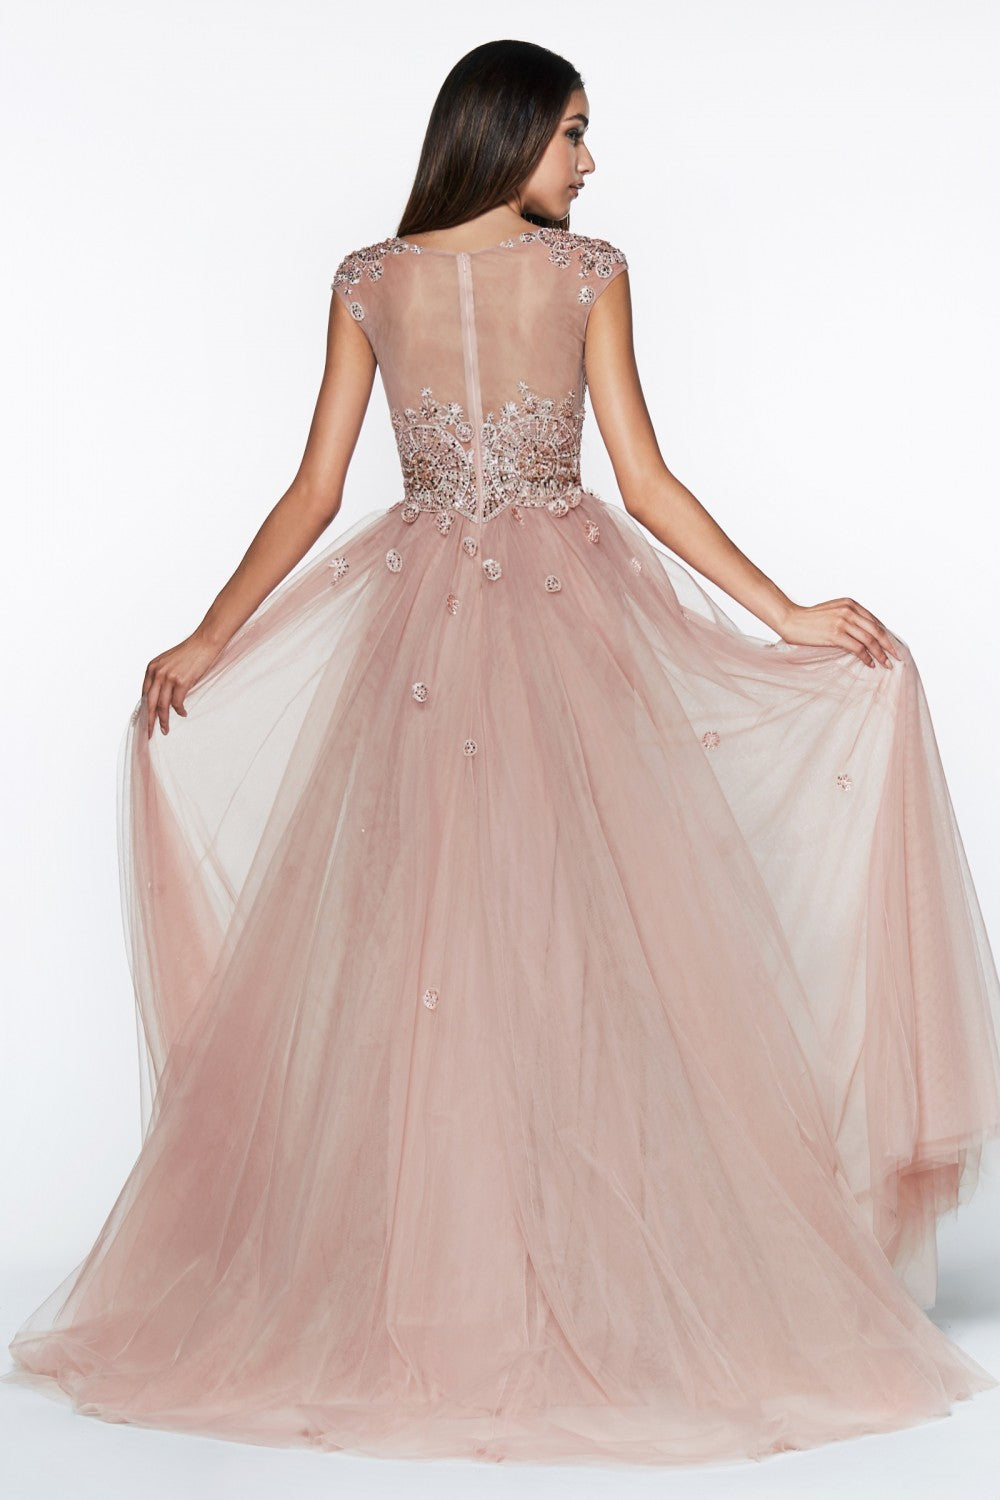 A-Line Tulle Gown With Cap Sleeve, Beaded Lace Applique And Leg Slit